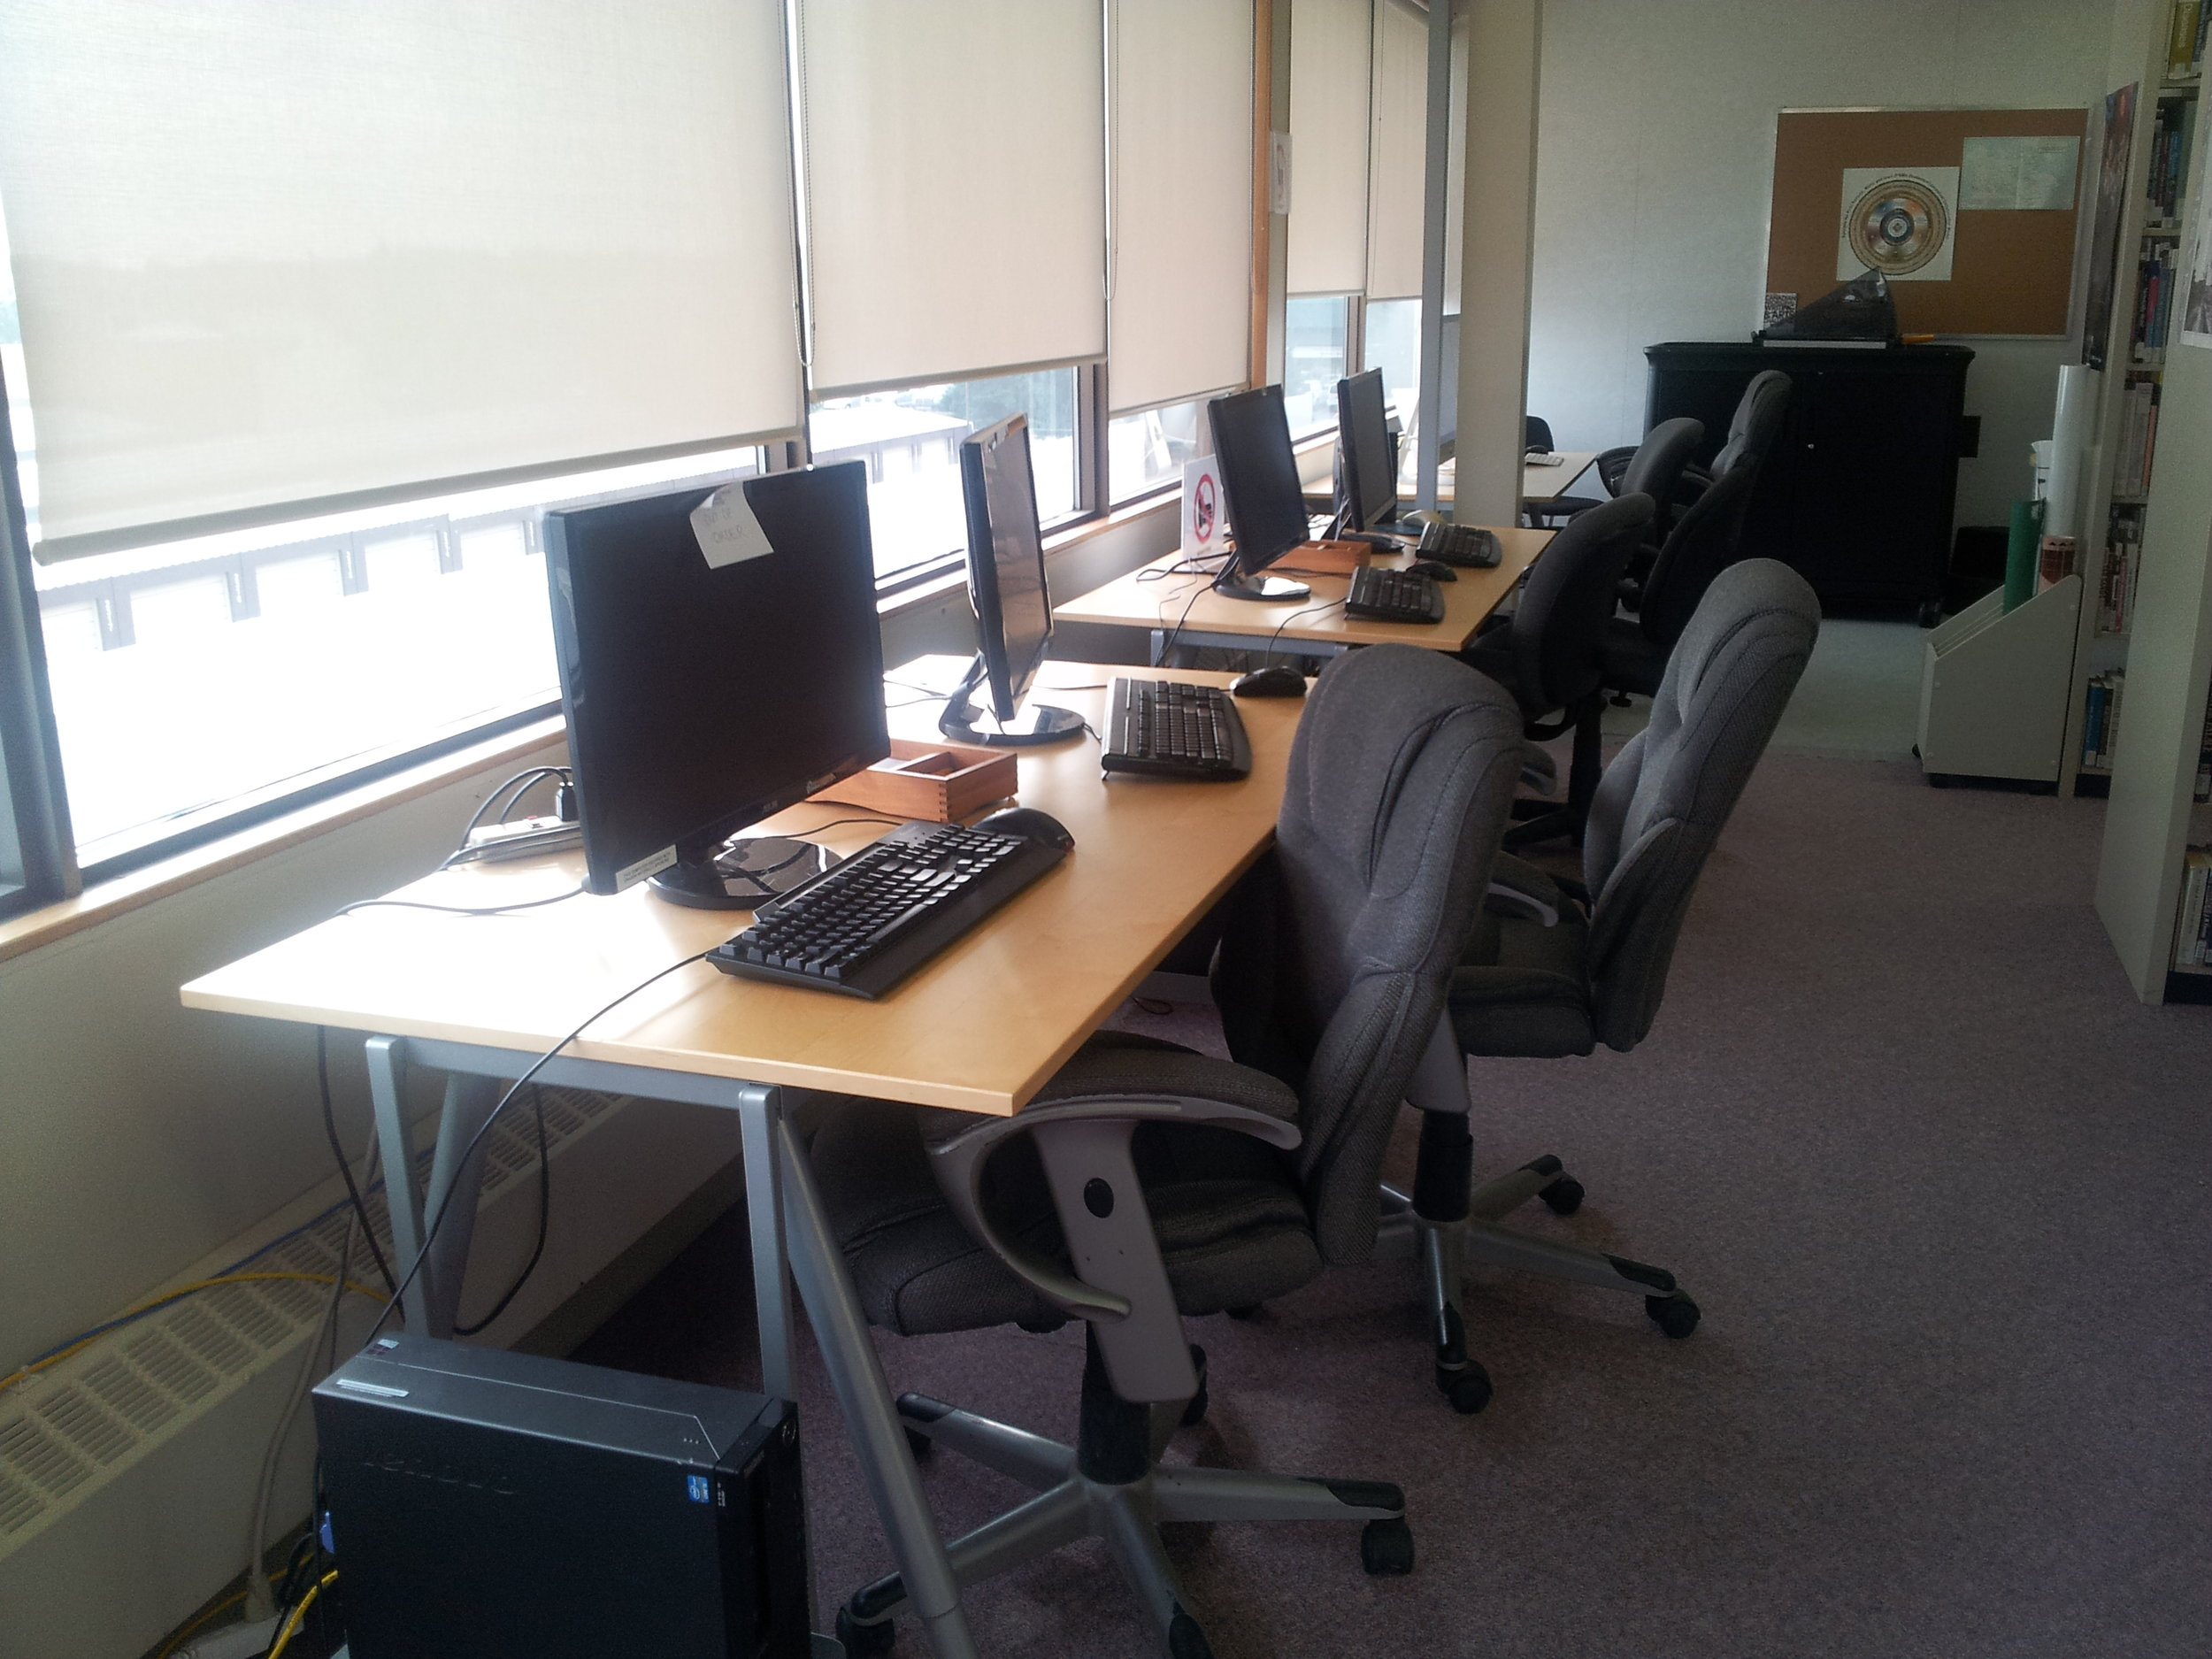 The computer area has 2 PCs and 2 Macs, which patrons are free to use. Due to the student body being comprised of First Nations students where many of them are also mature students, there is a strong emphasis on providing them with technology skills that they can apply to modern day life being mainly Microsoft Office Suite and social media.